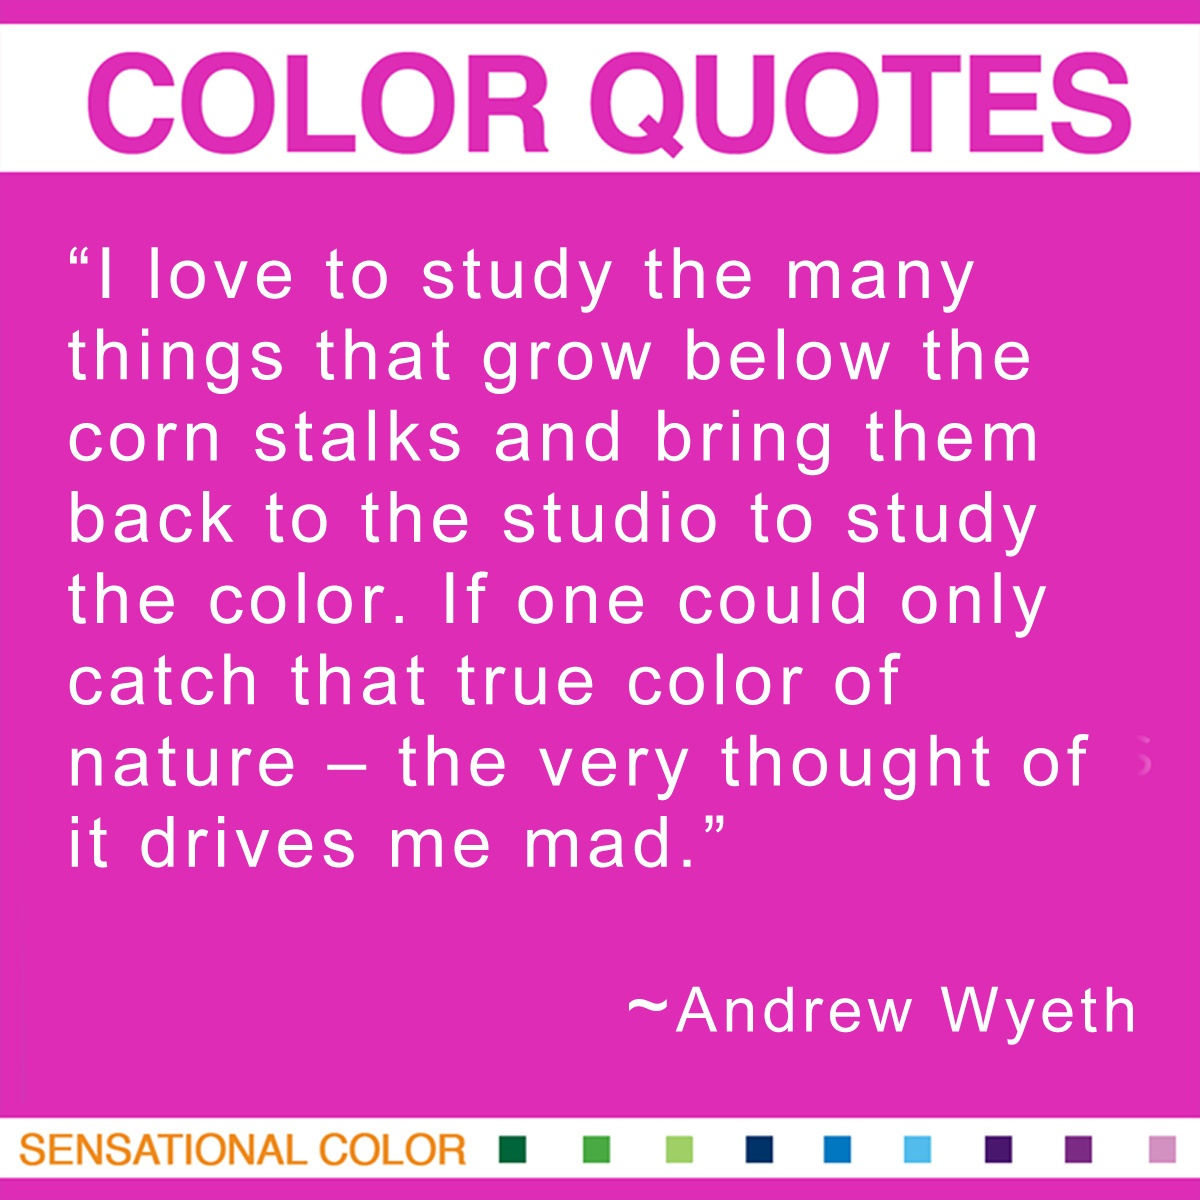 """I love to study the many things that grow below the corn stalks and bring them back to the studio to study the color. If one could only catch that true color of nature – the very thought of it drives me mad."" - Andrew Wyeth"